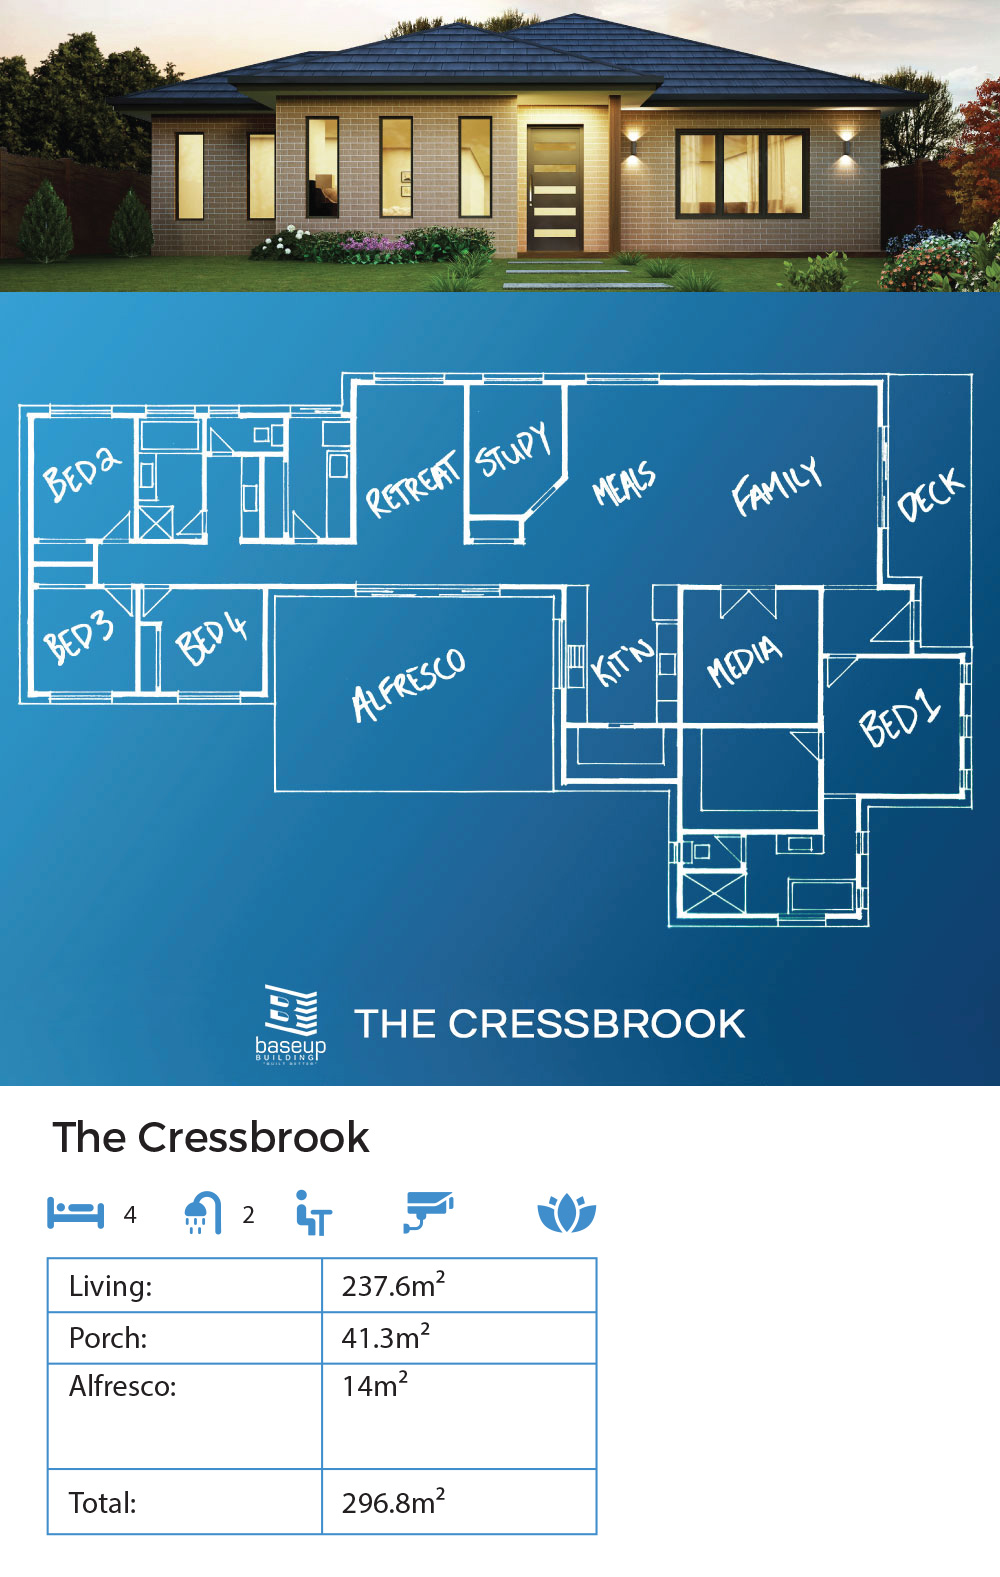 The Cressbrook